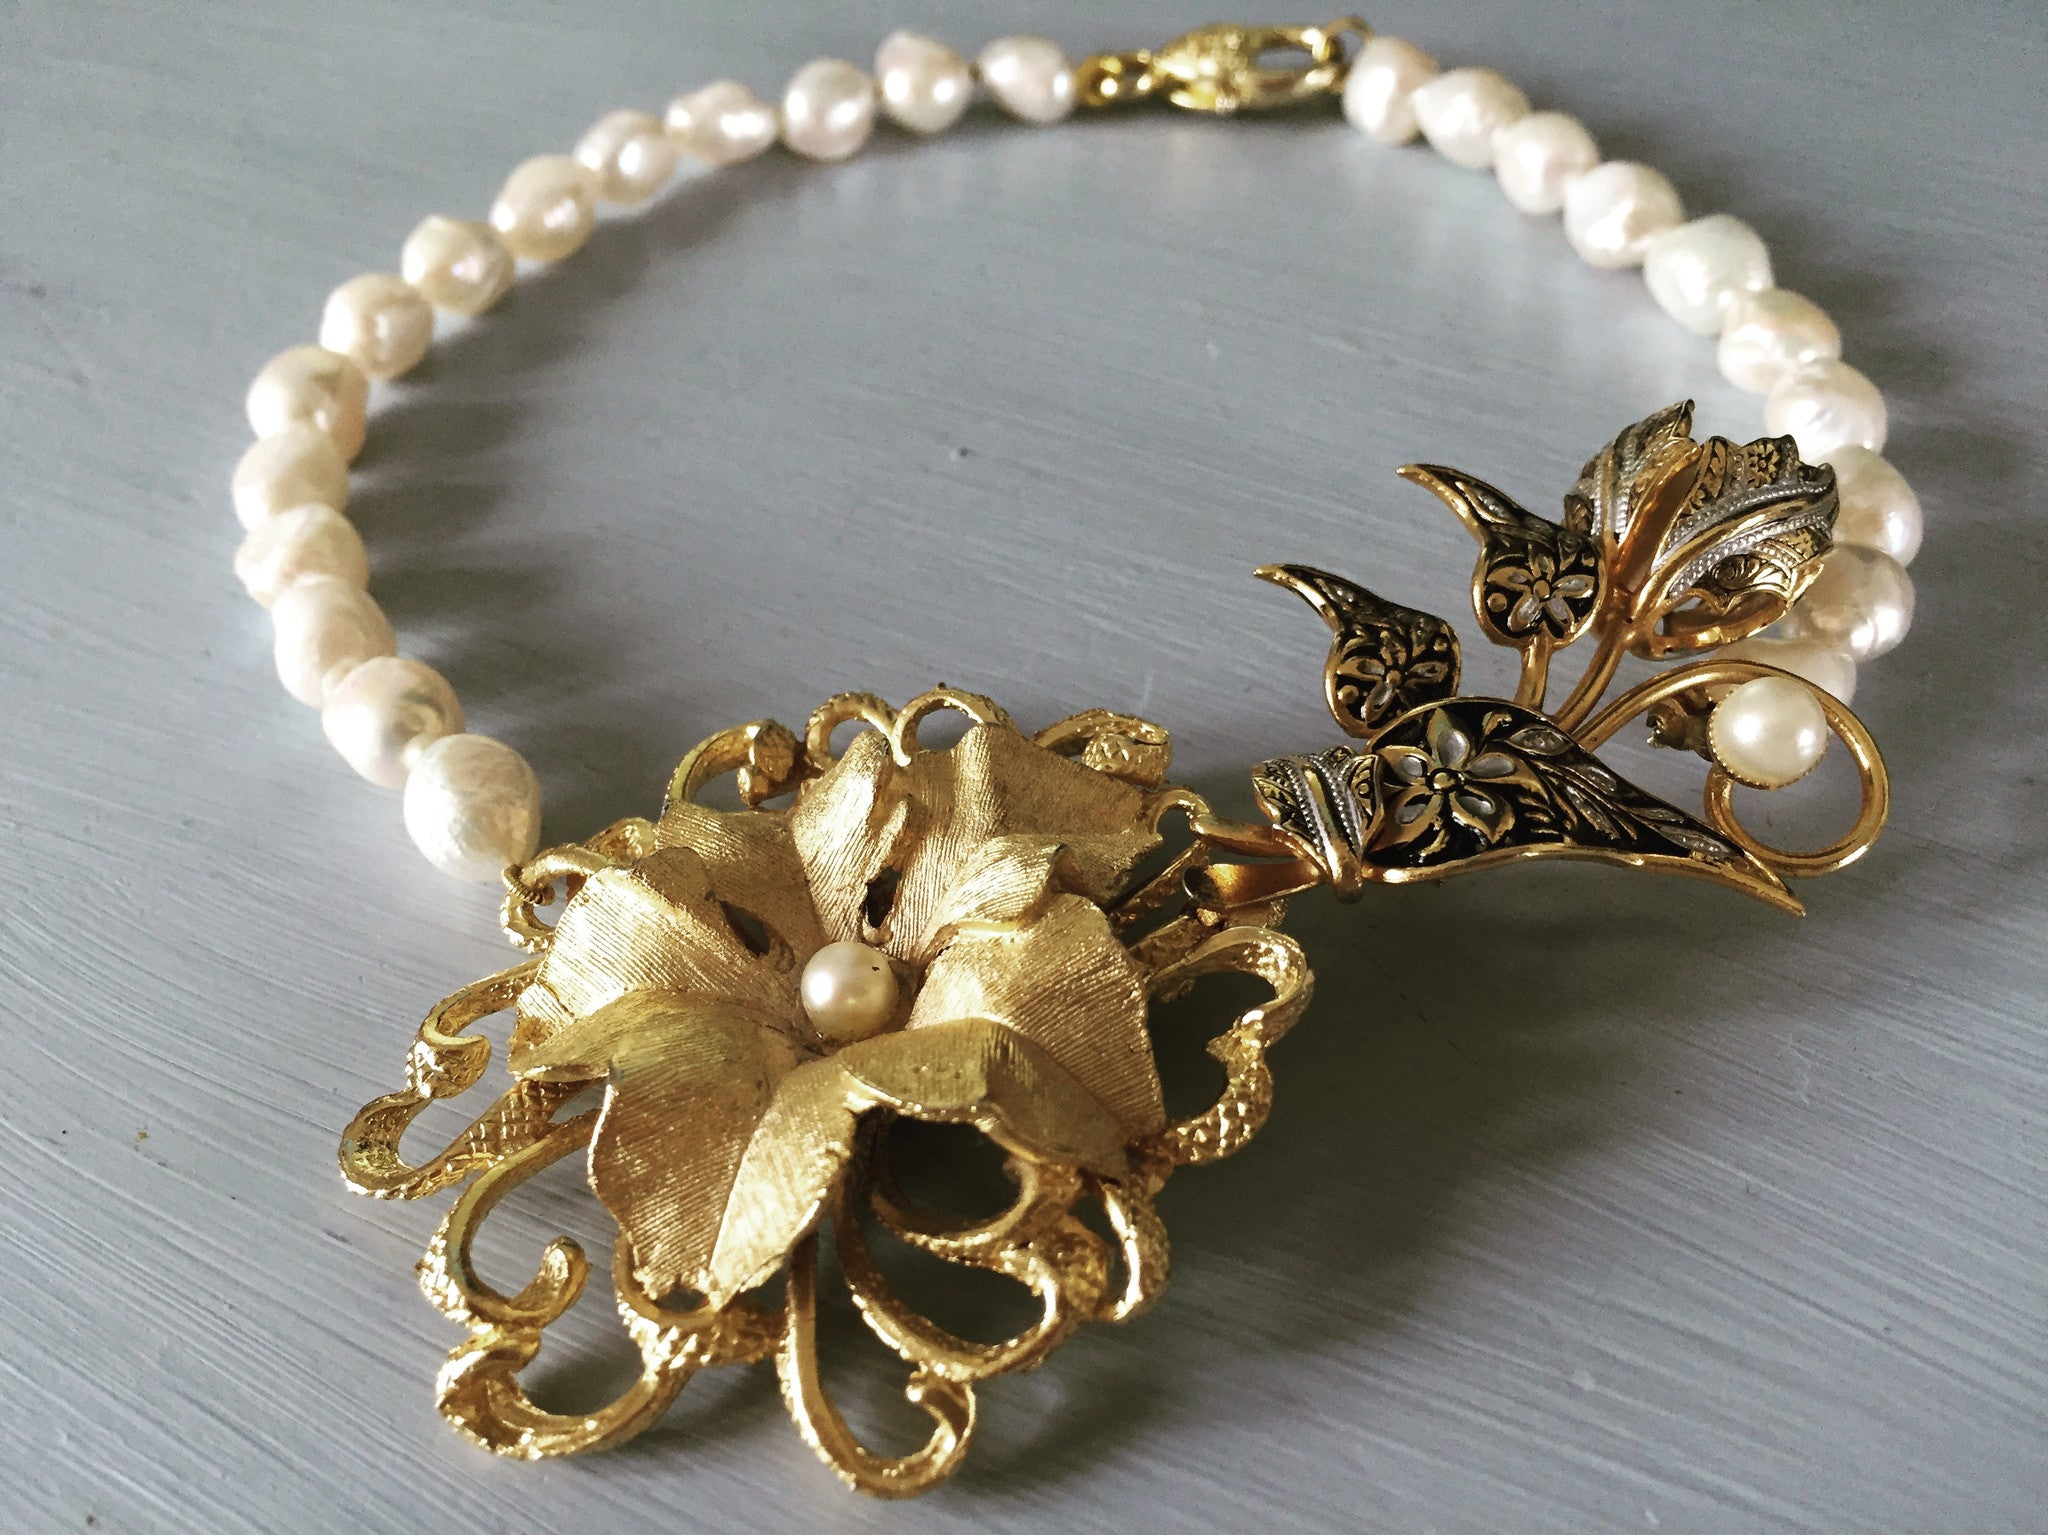 Vintage flower and pearl choker necklace